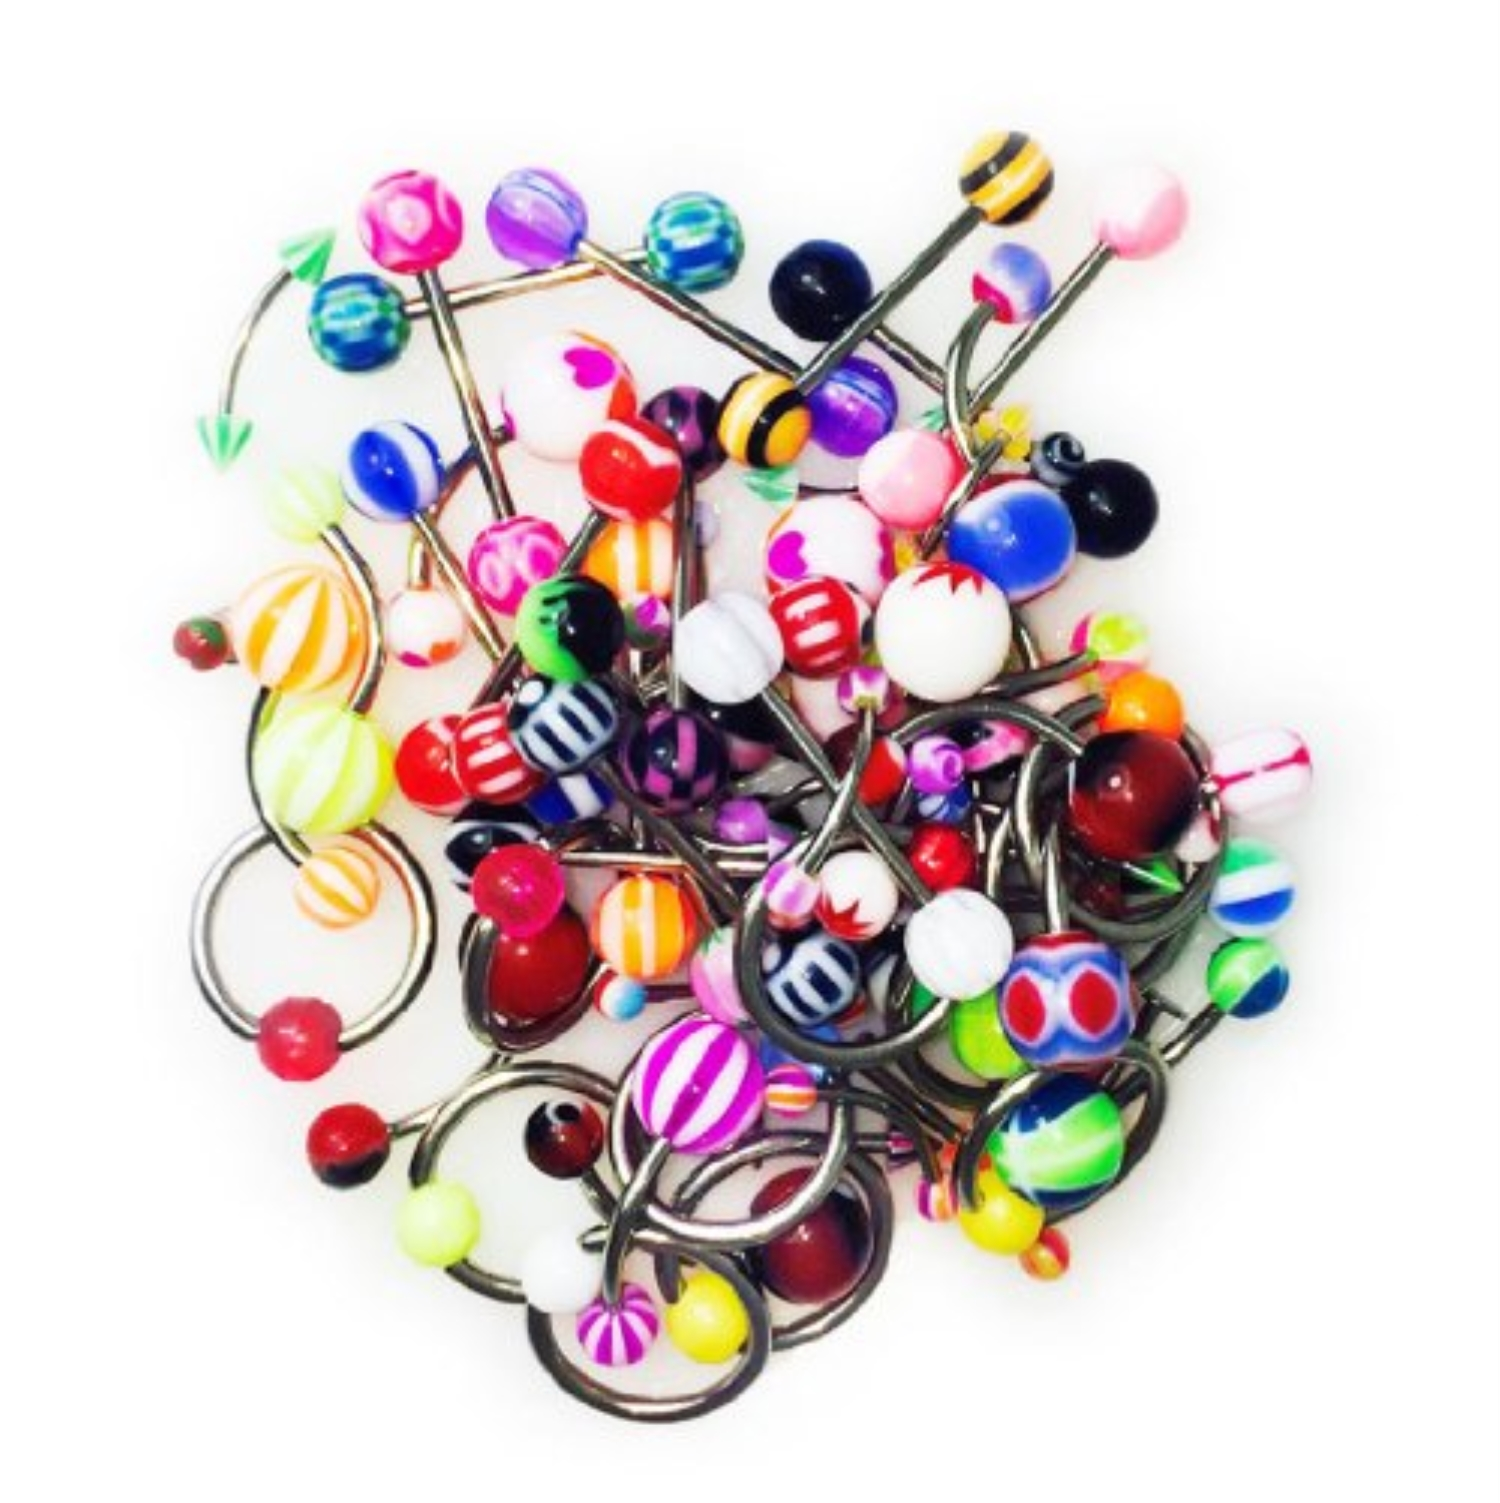 BodyJ4You® Piercing Kit 60 Pieces Mixed Lot Belly Ring Labret Tongue Curve Eyebrow Nipple Piercing